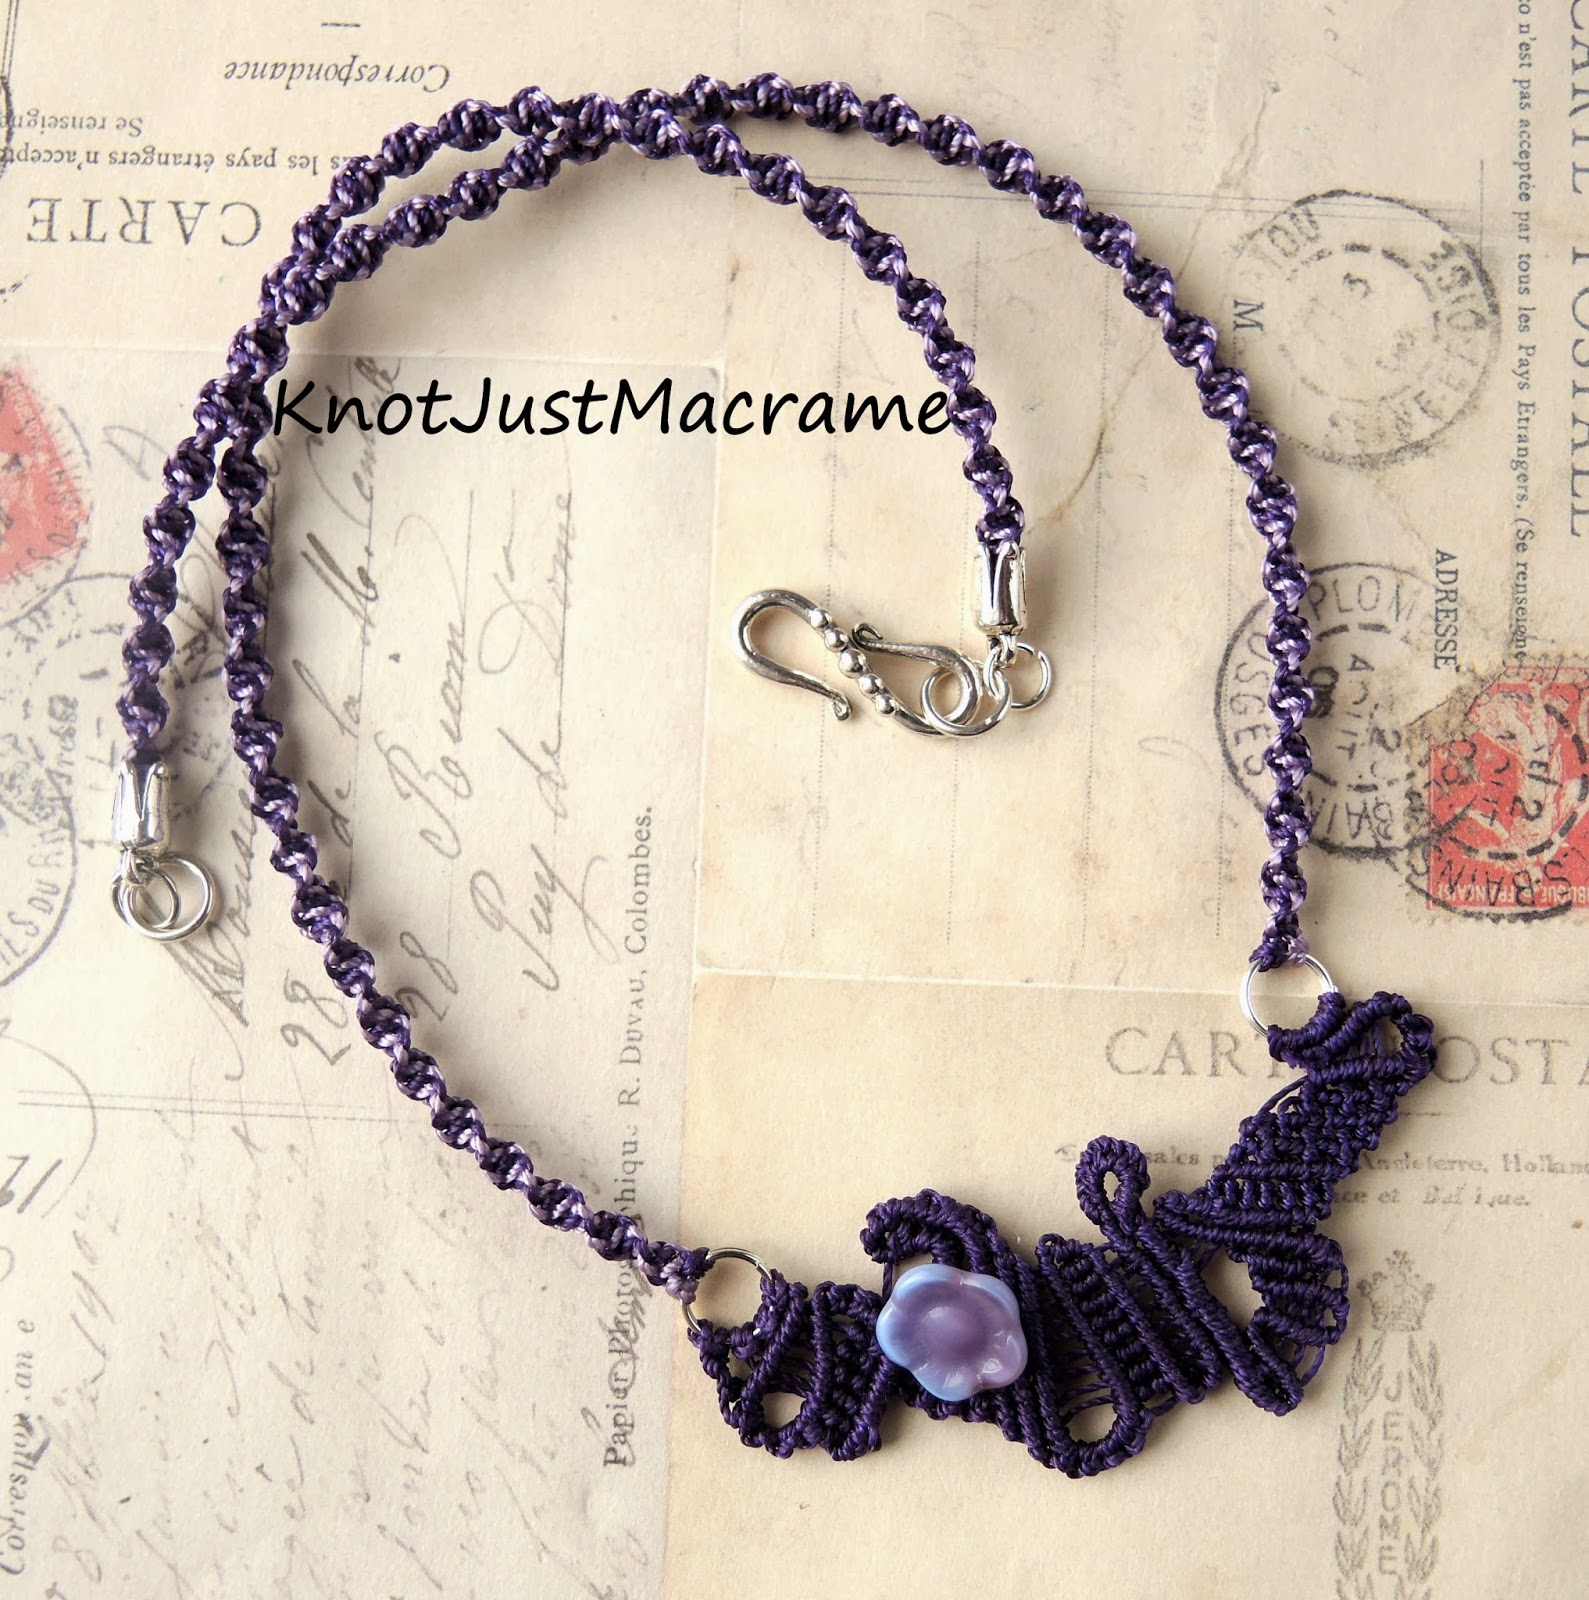 Purple freeform micro macrame necklace by Sherri Stokey